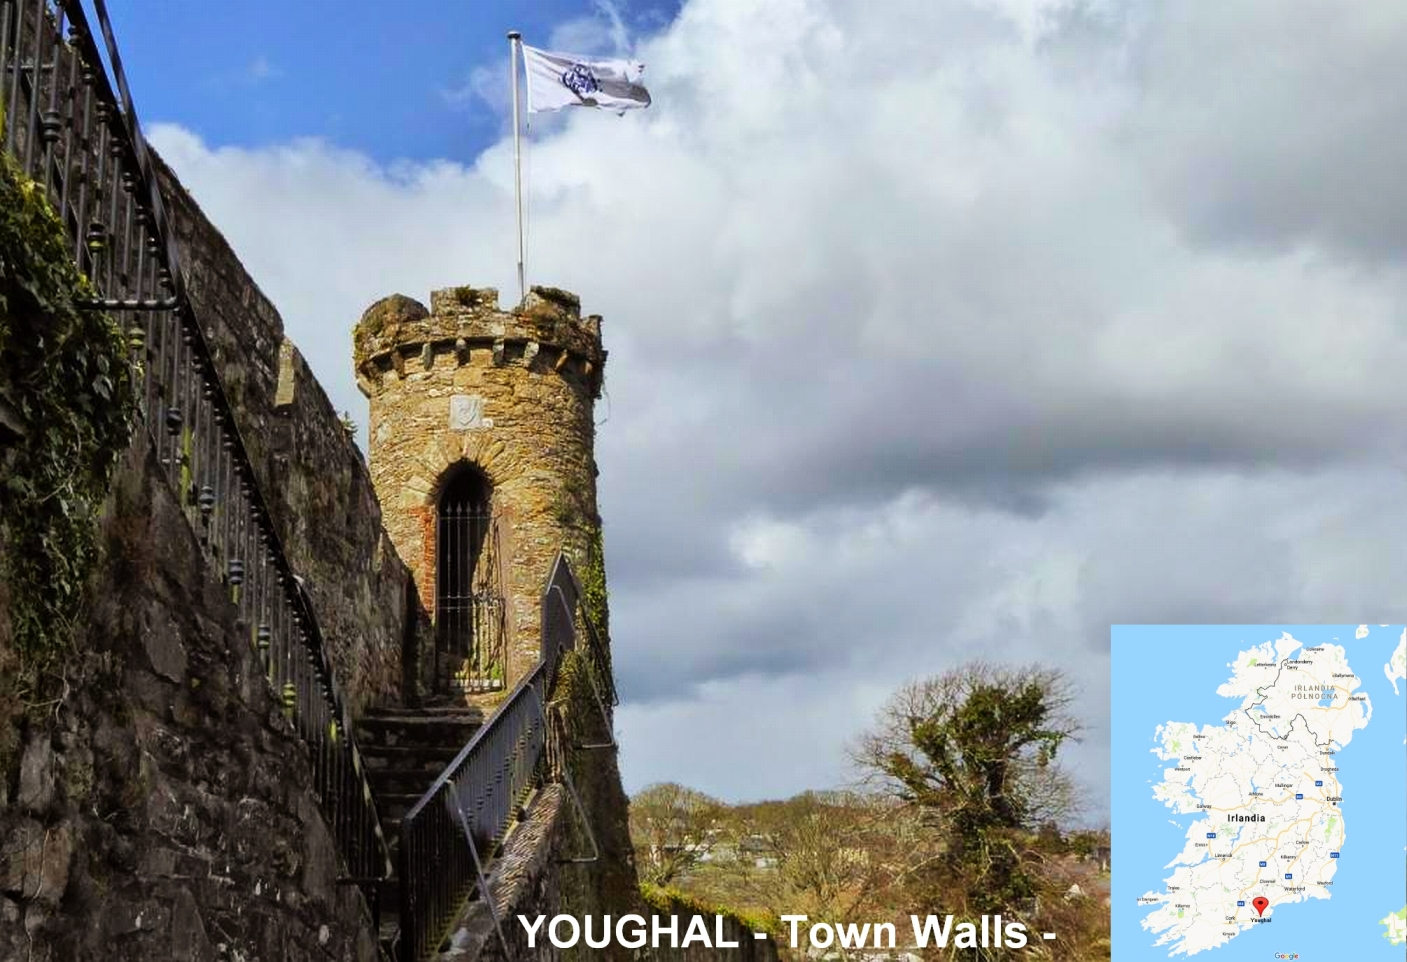 Youghal Town Walls